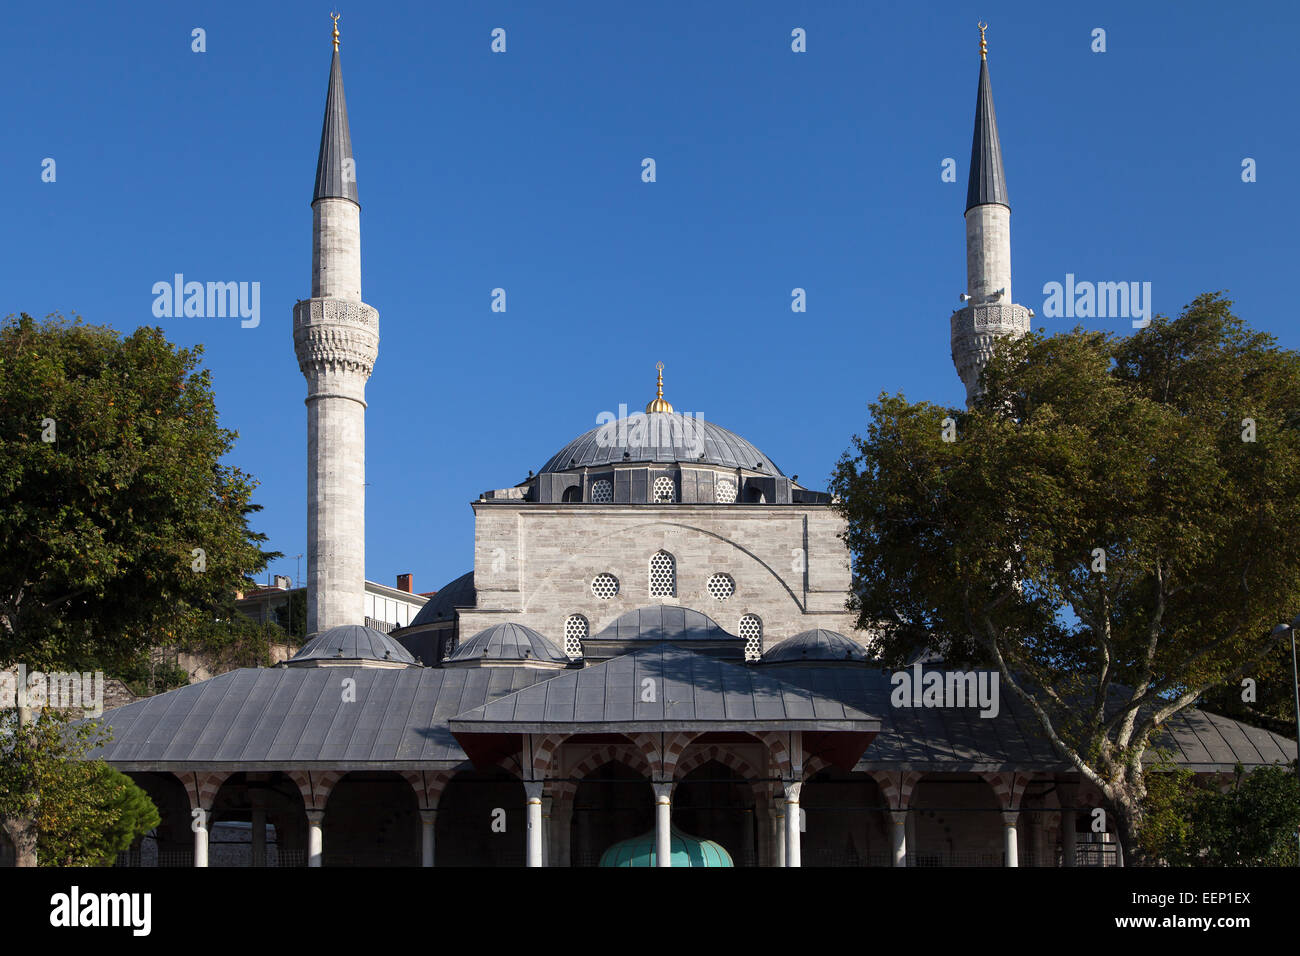 Mihrimah Sultan Mosque in Uskudar, Istanbul, Turkey. - Stock Image